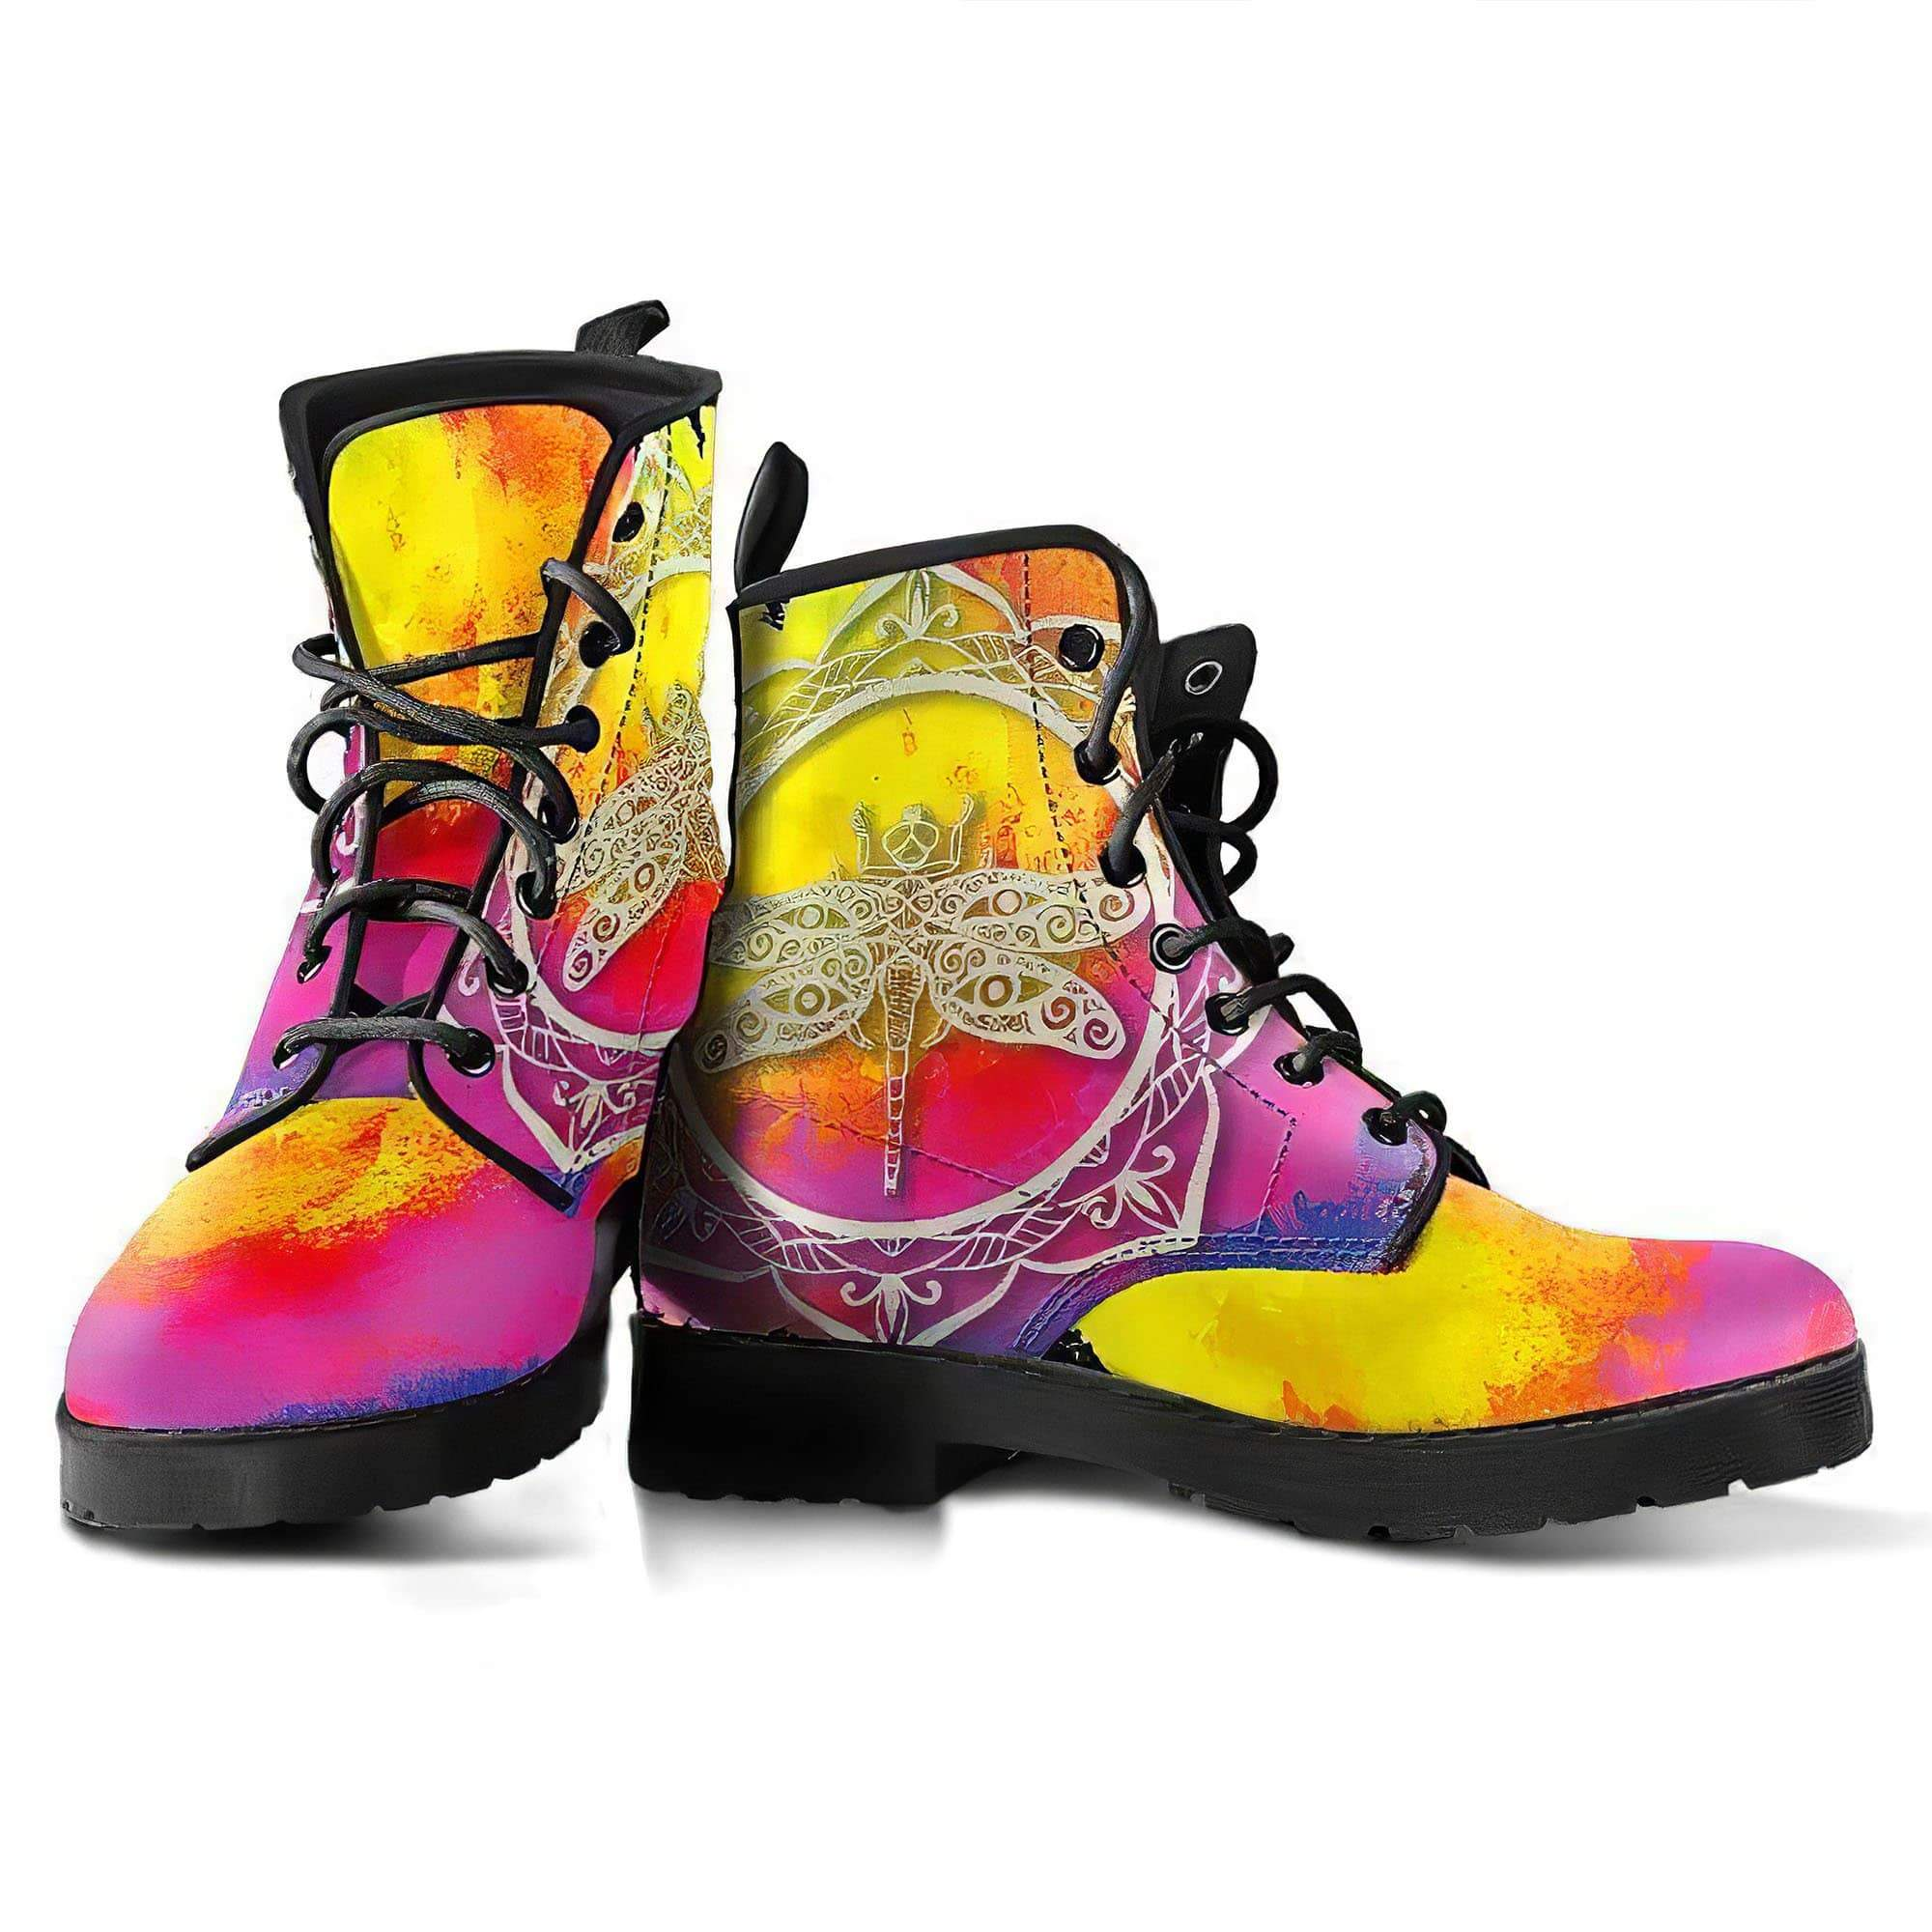 Watercolor Dragonfly 5 Women's Boots Vegan Friendly Leather Women's Leather Boots